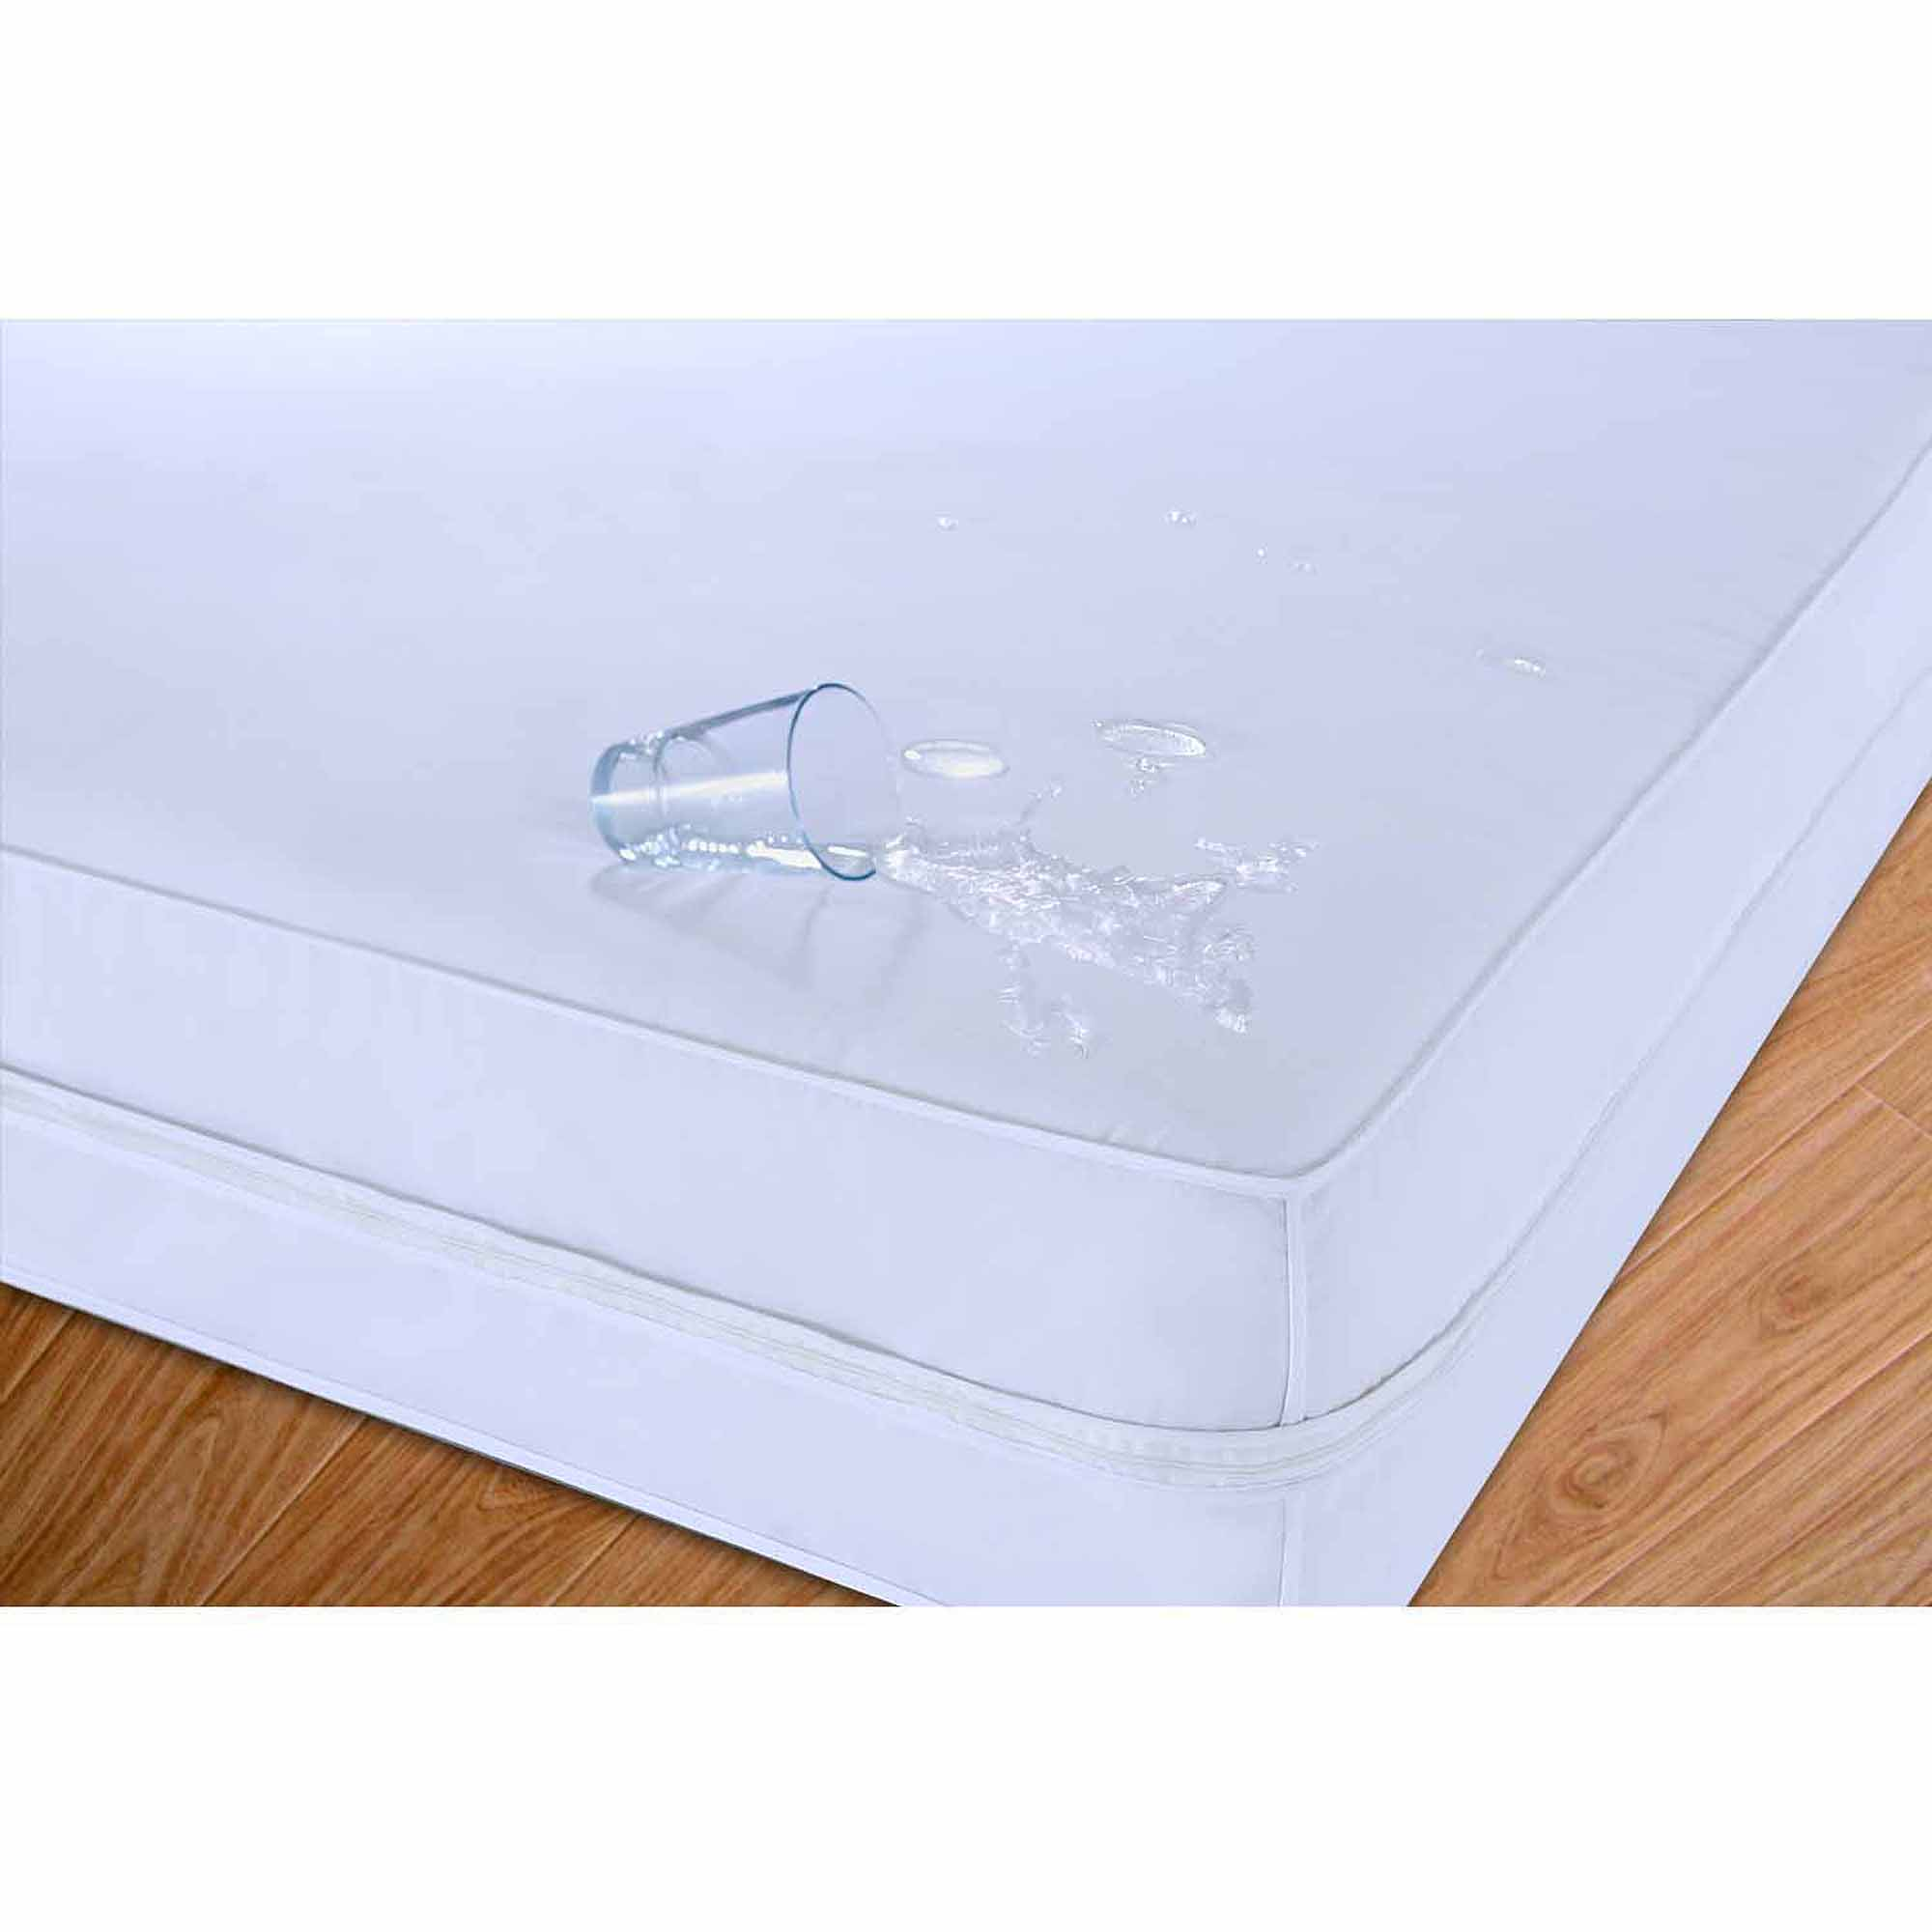 Stayclean Cotton Water- and Stain-Resistant Mattress Protector by Epoch Hometex Inc